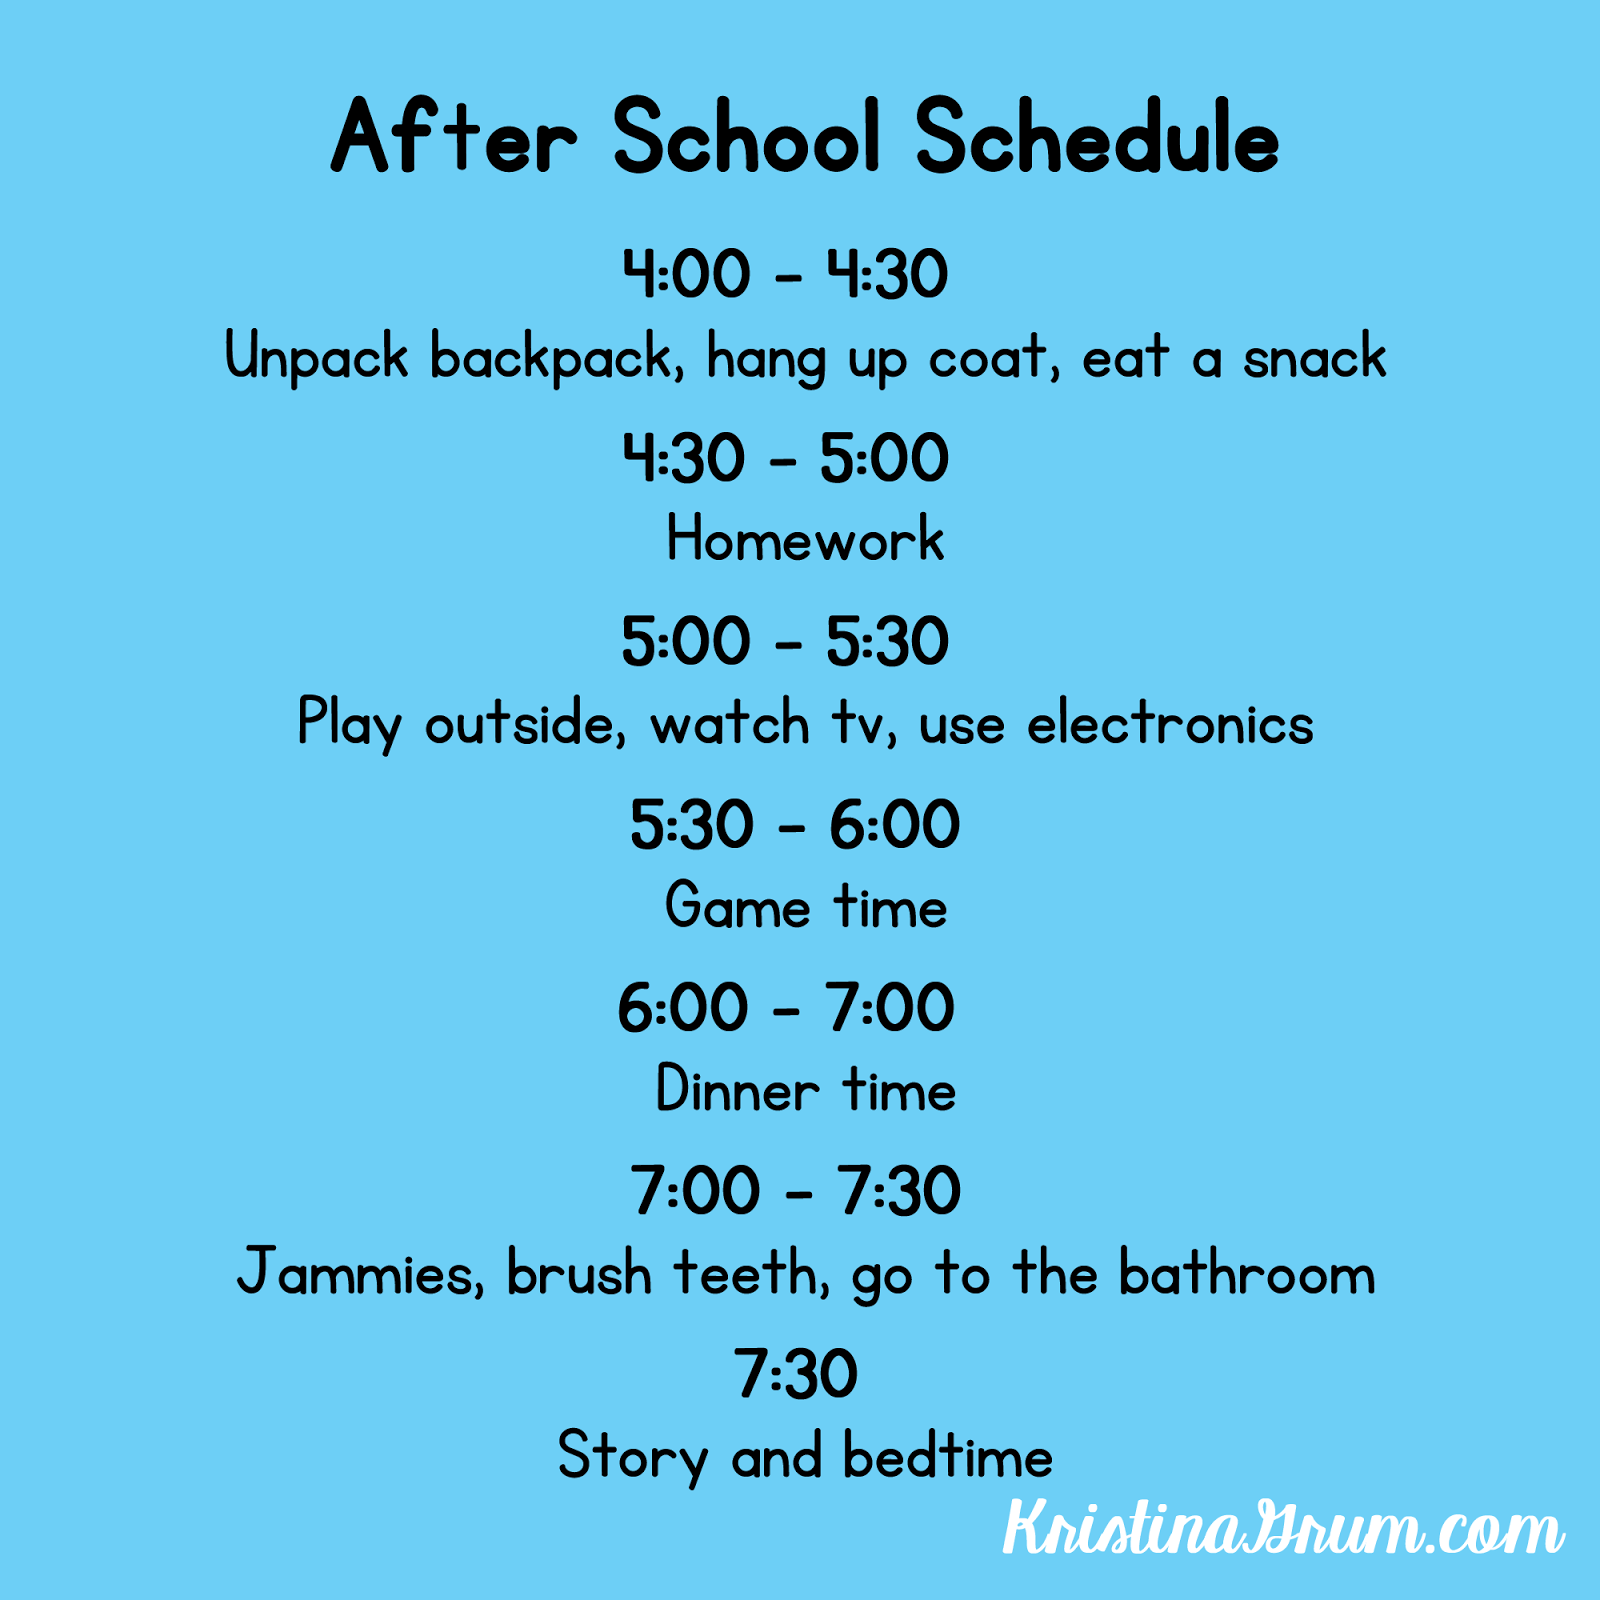 An After School Schedule Can Help To Improve Behavior At